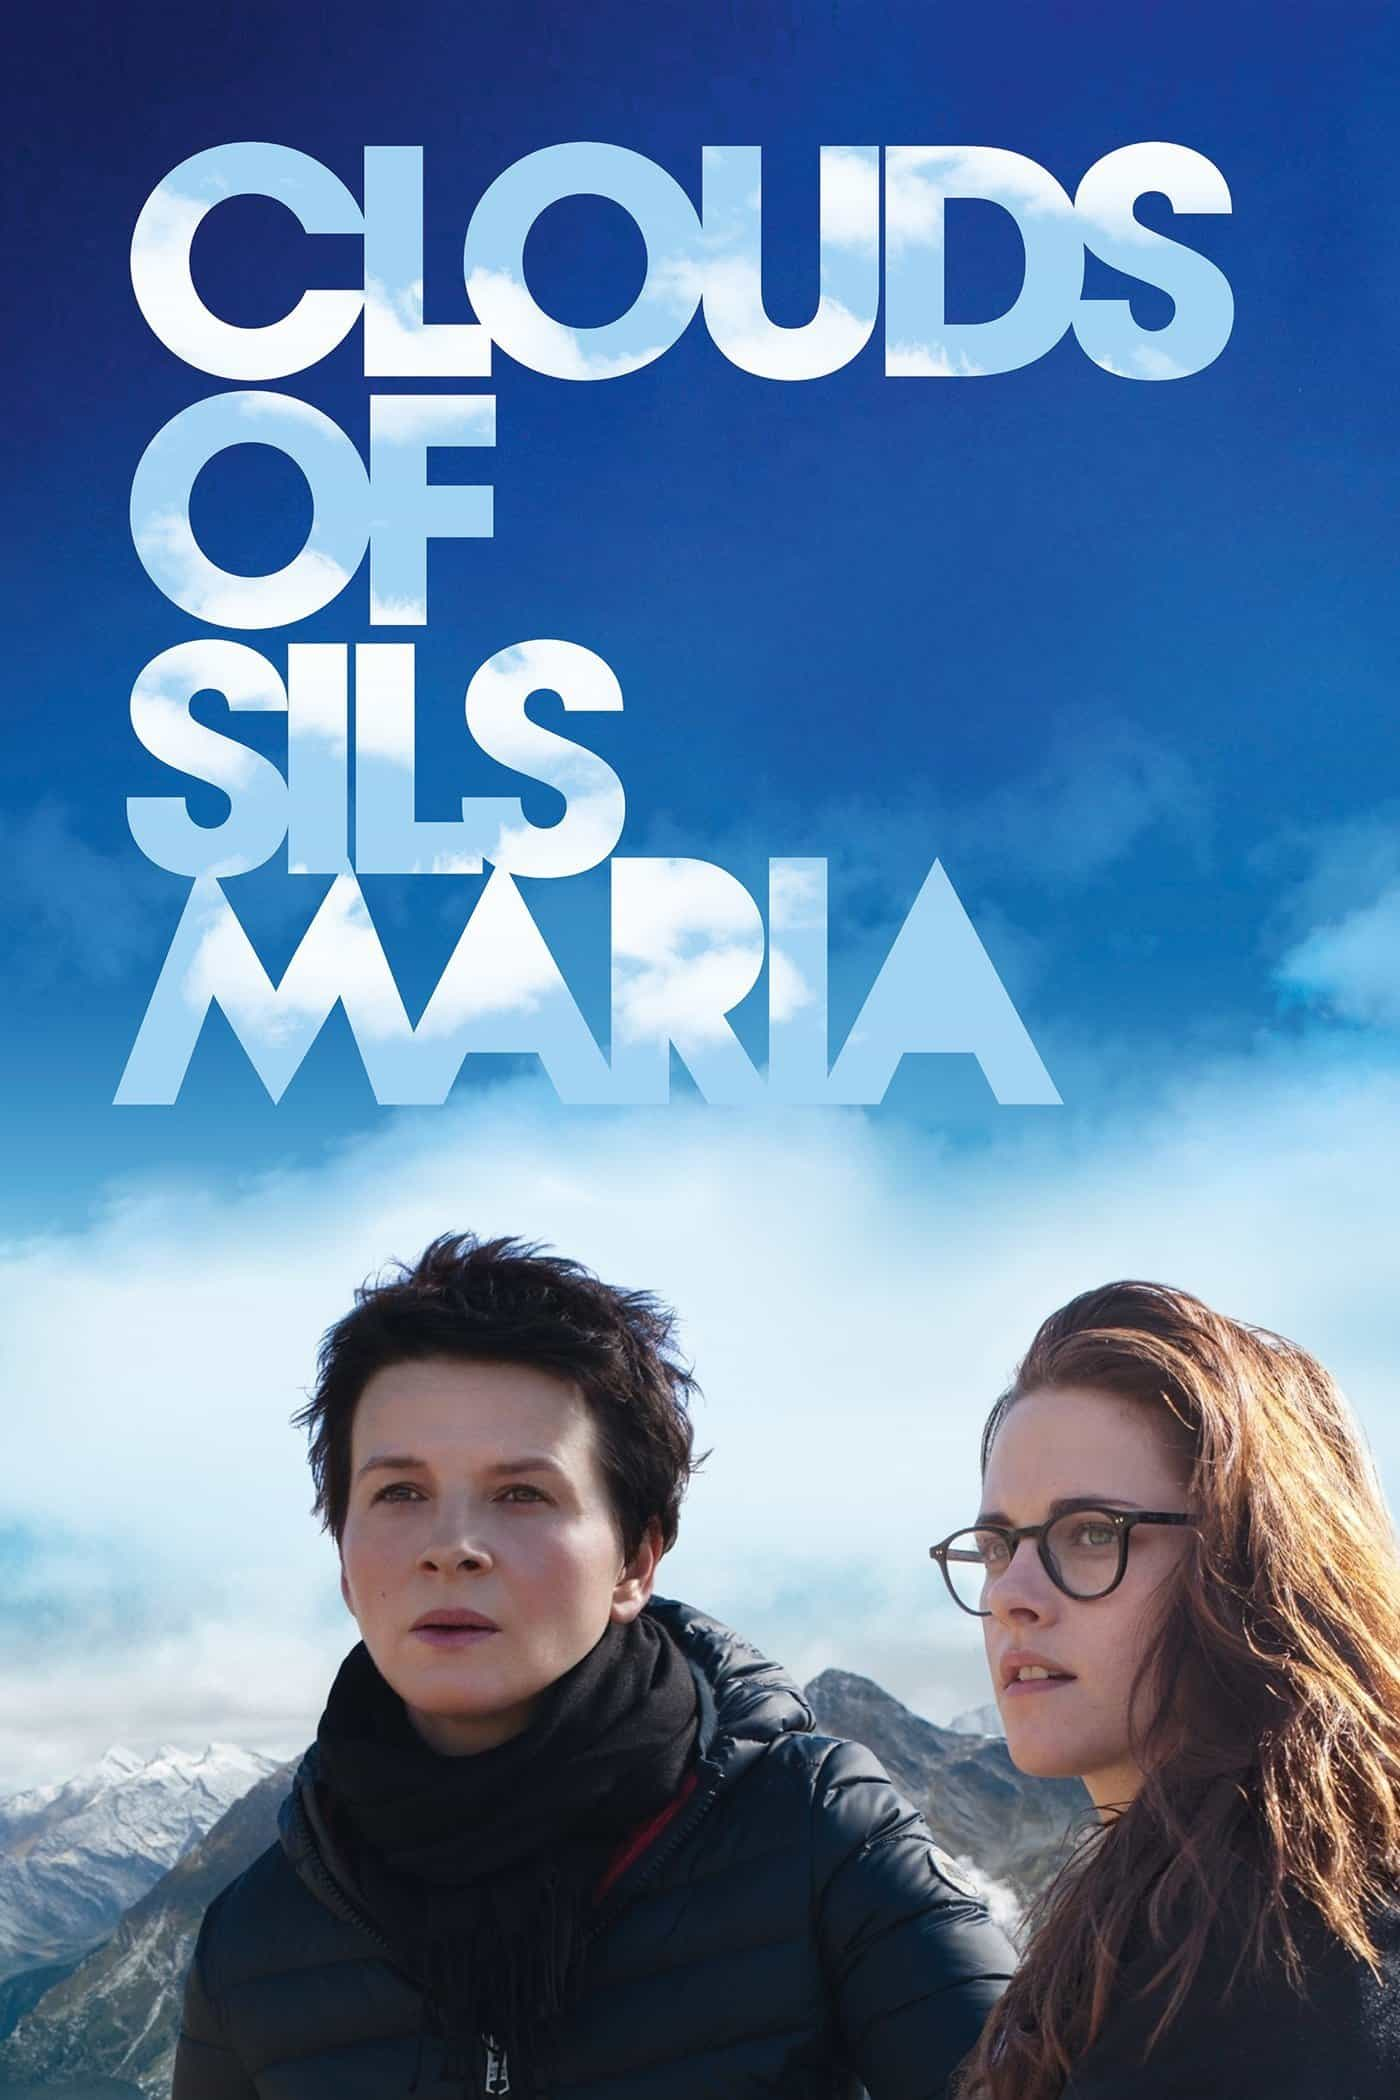 Clouds of Sils Maria, 2014